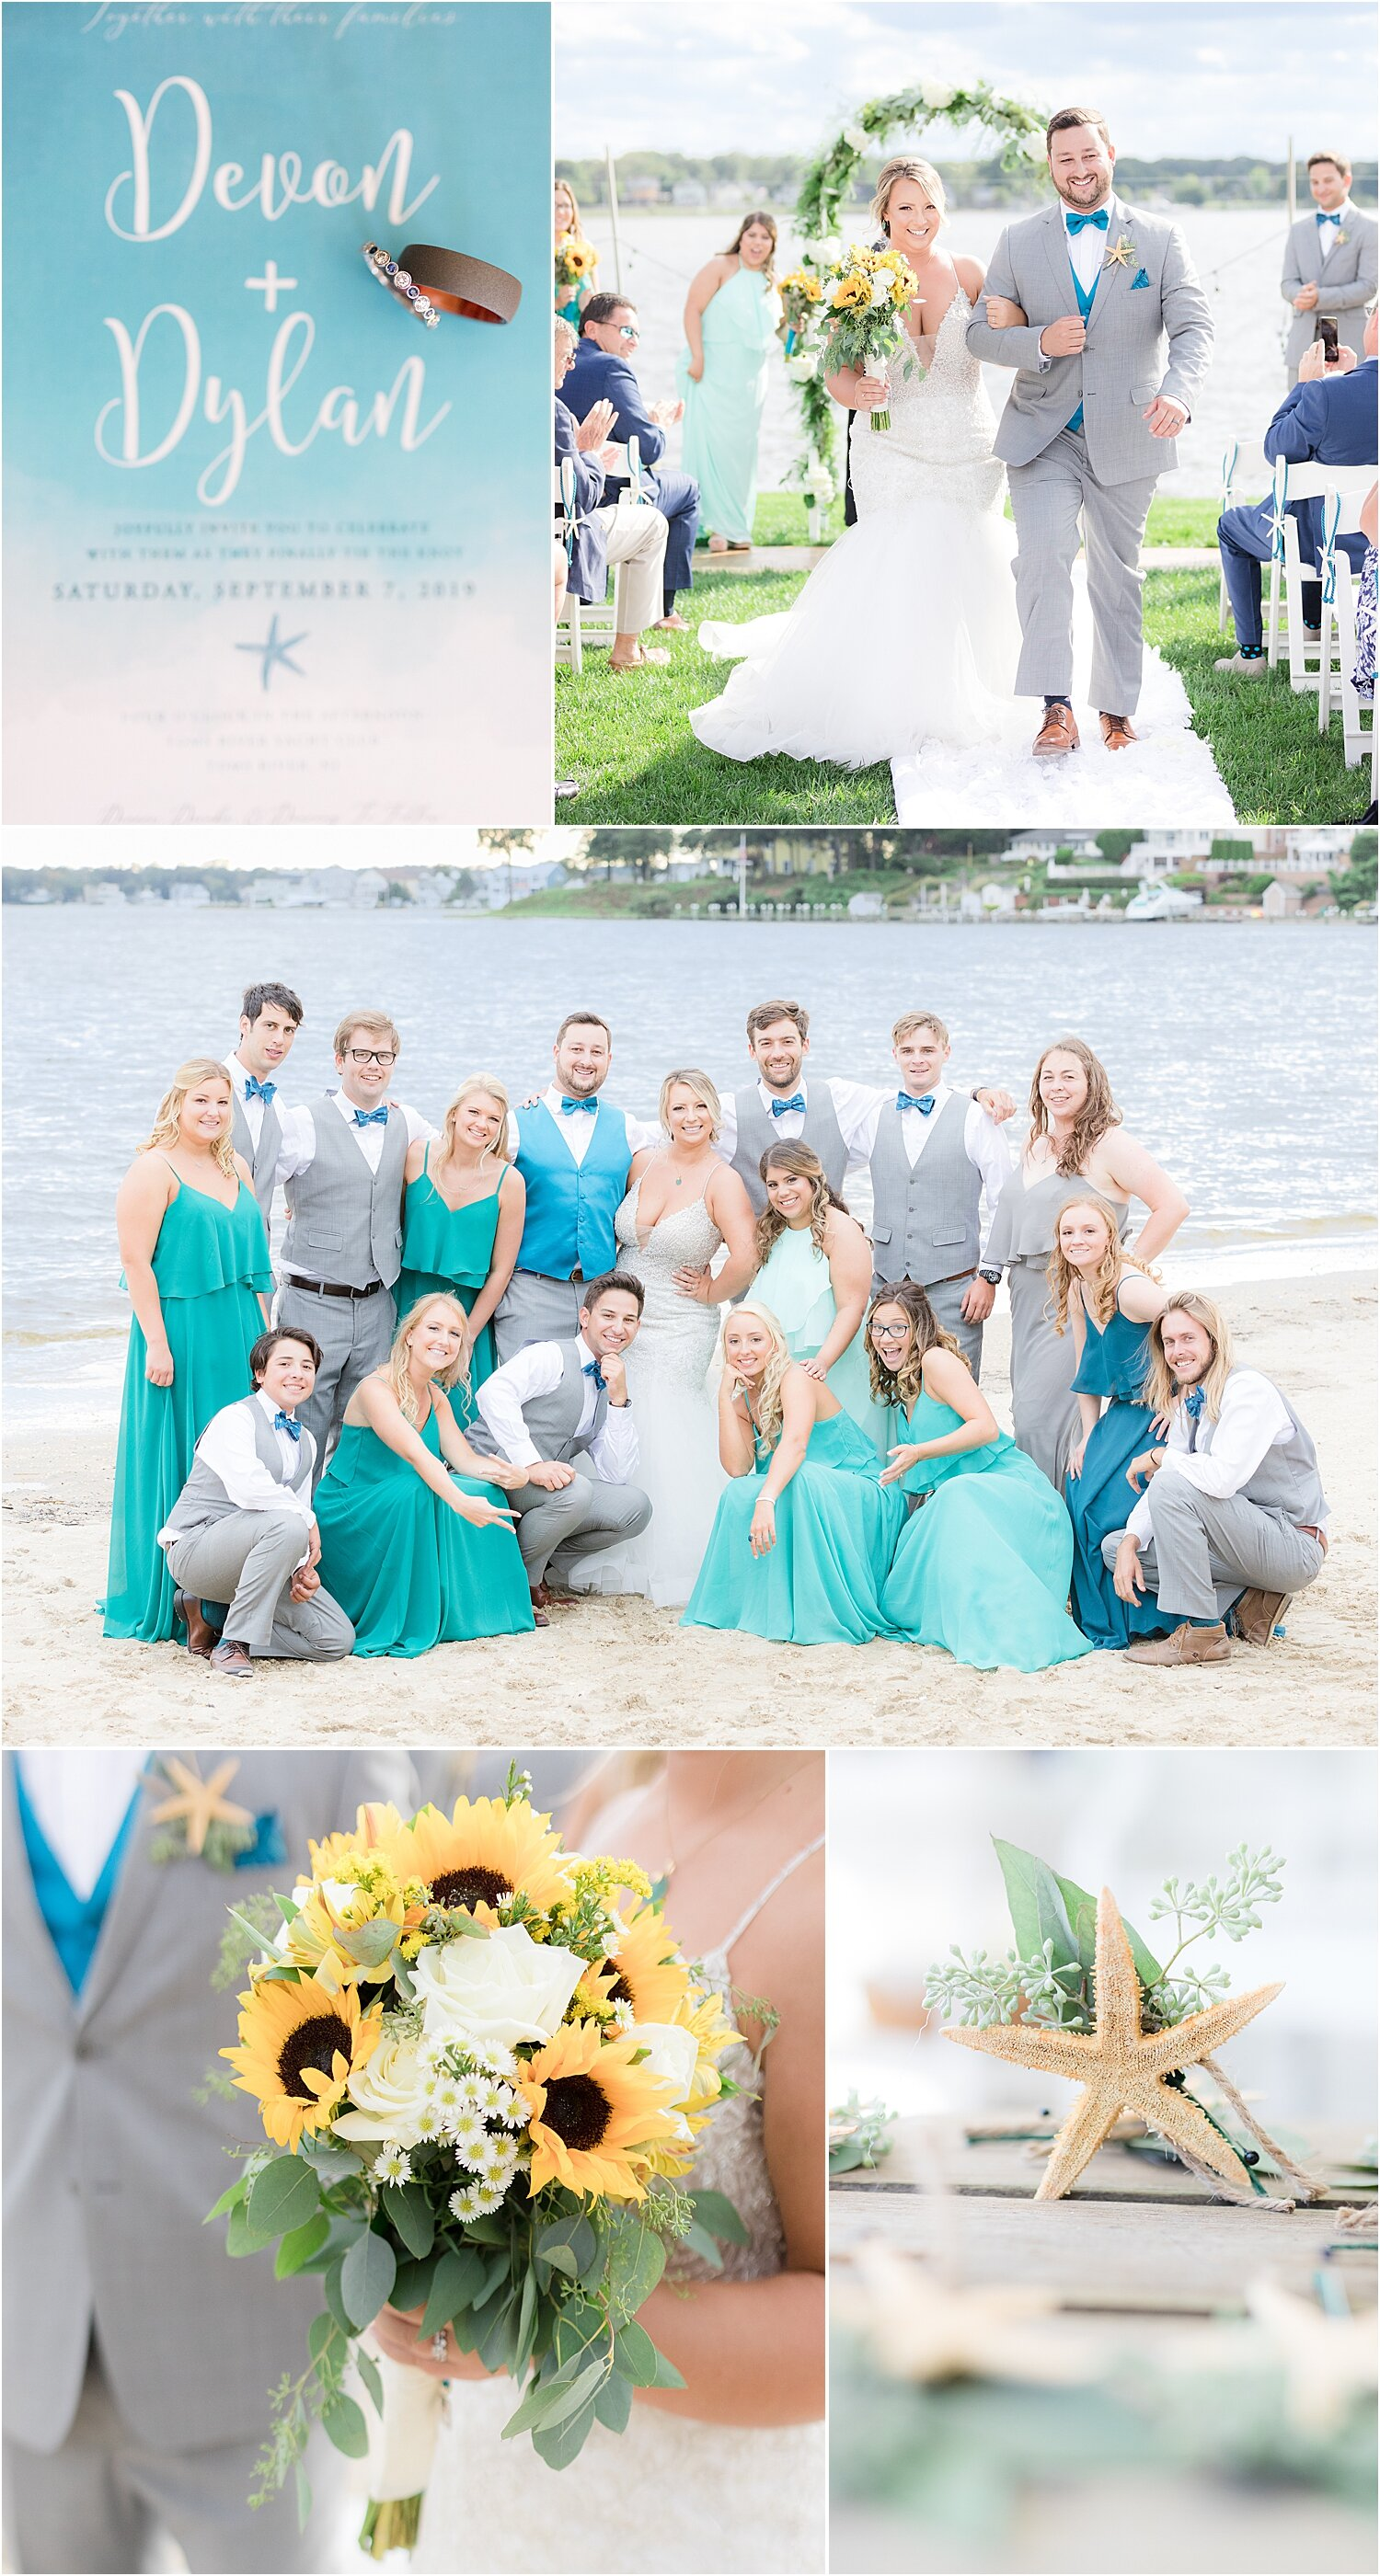 rustic chic mountainside wedding photos at Skyview Golf Club in Sparta, NJ